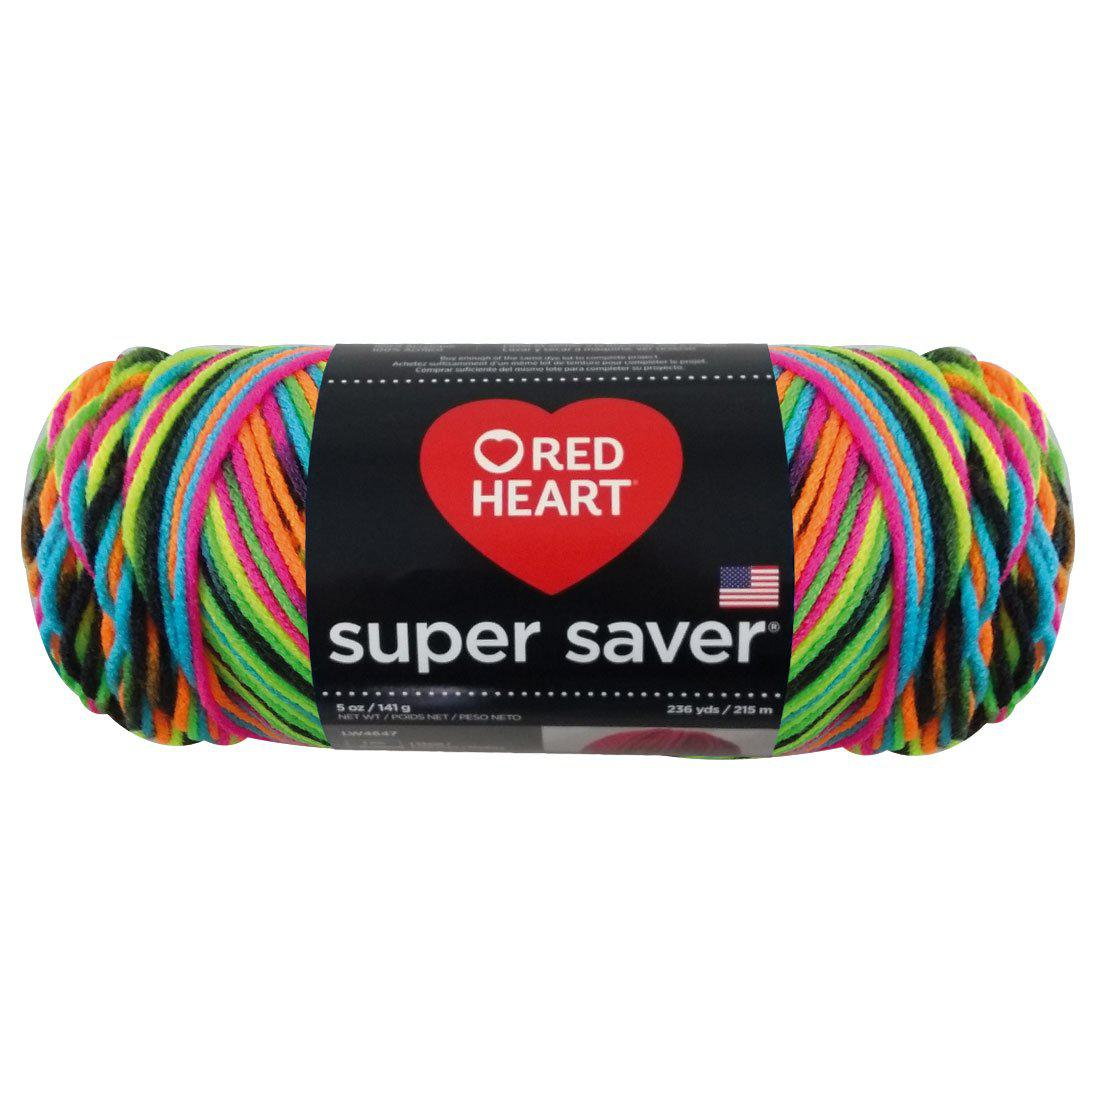 Estambre Super Saver Matizados y Aran, Marca Red Heart, Madeja de 141g